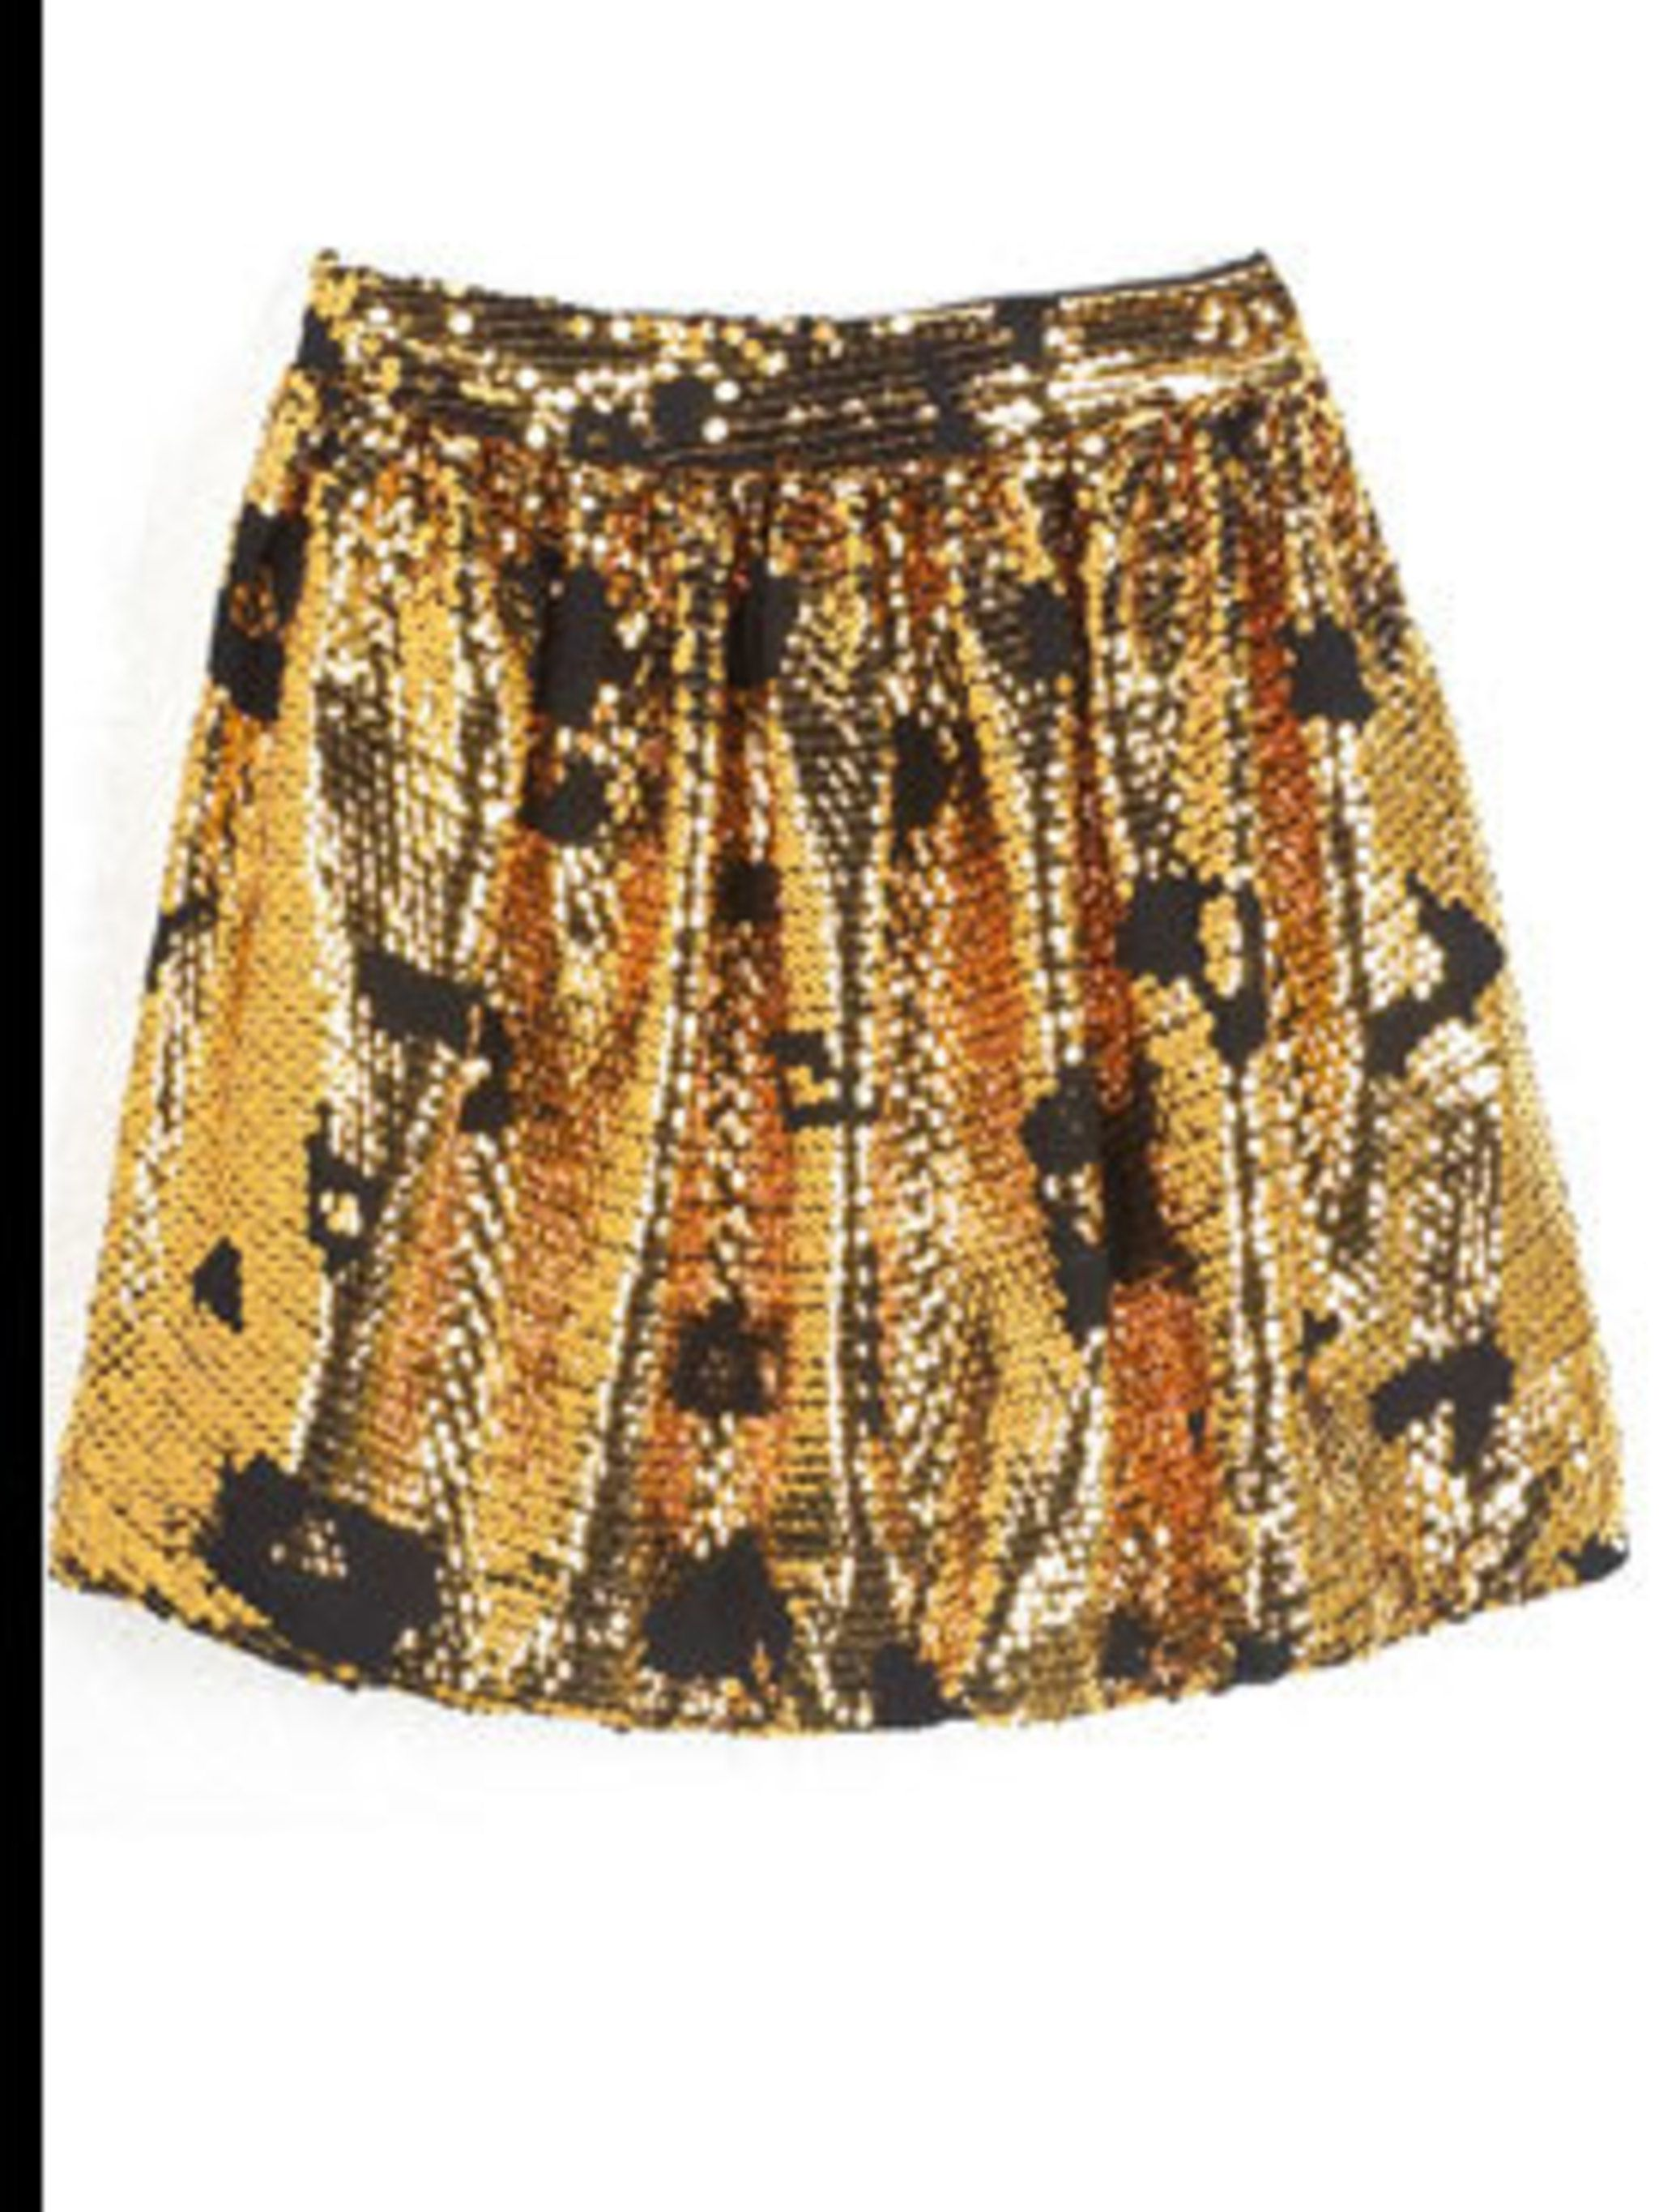 <p>Gold sequined skirt, £289, by See by Chloe at Harrods (0207 730 1234)</p>